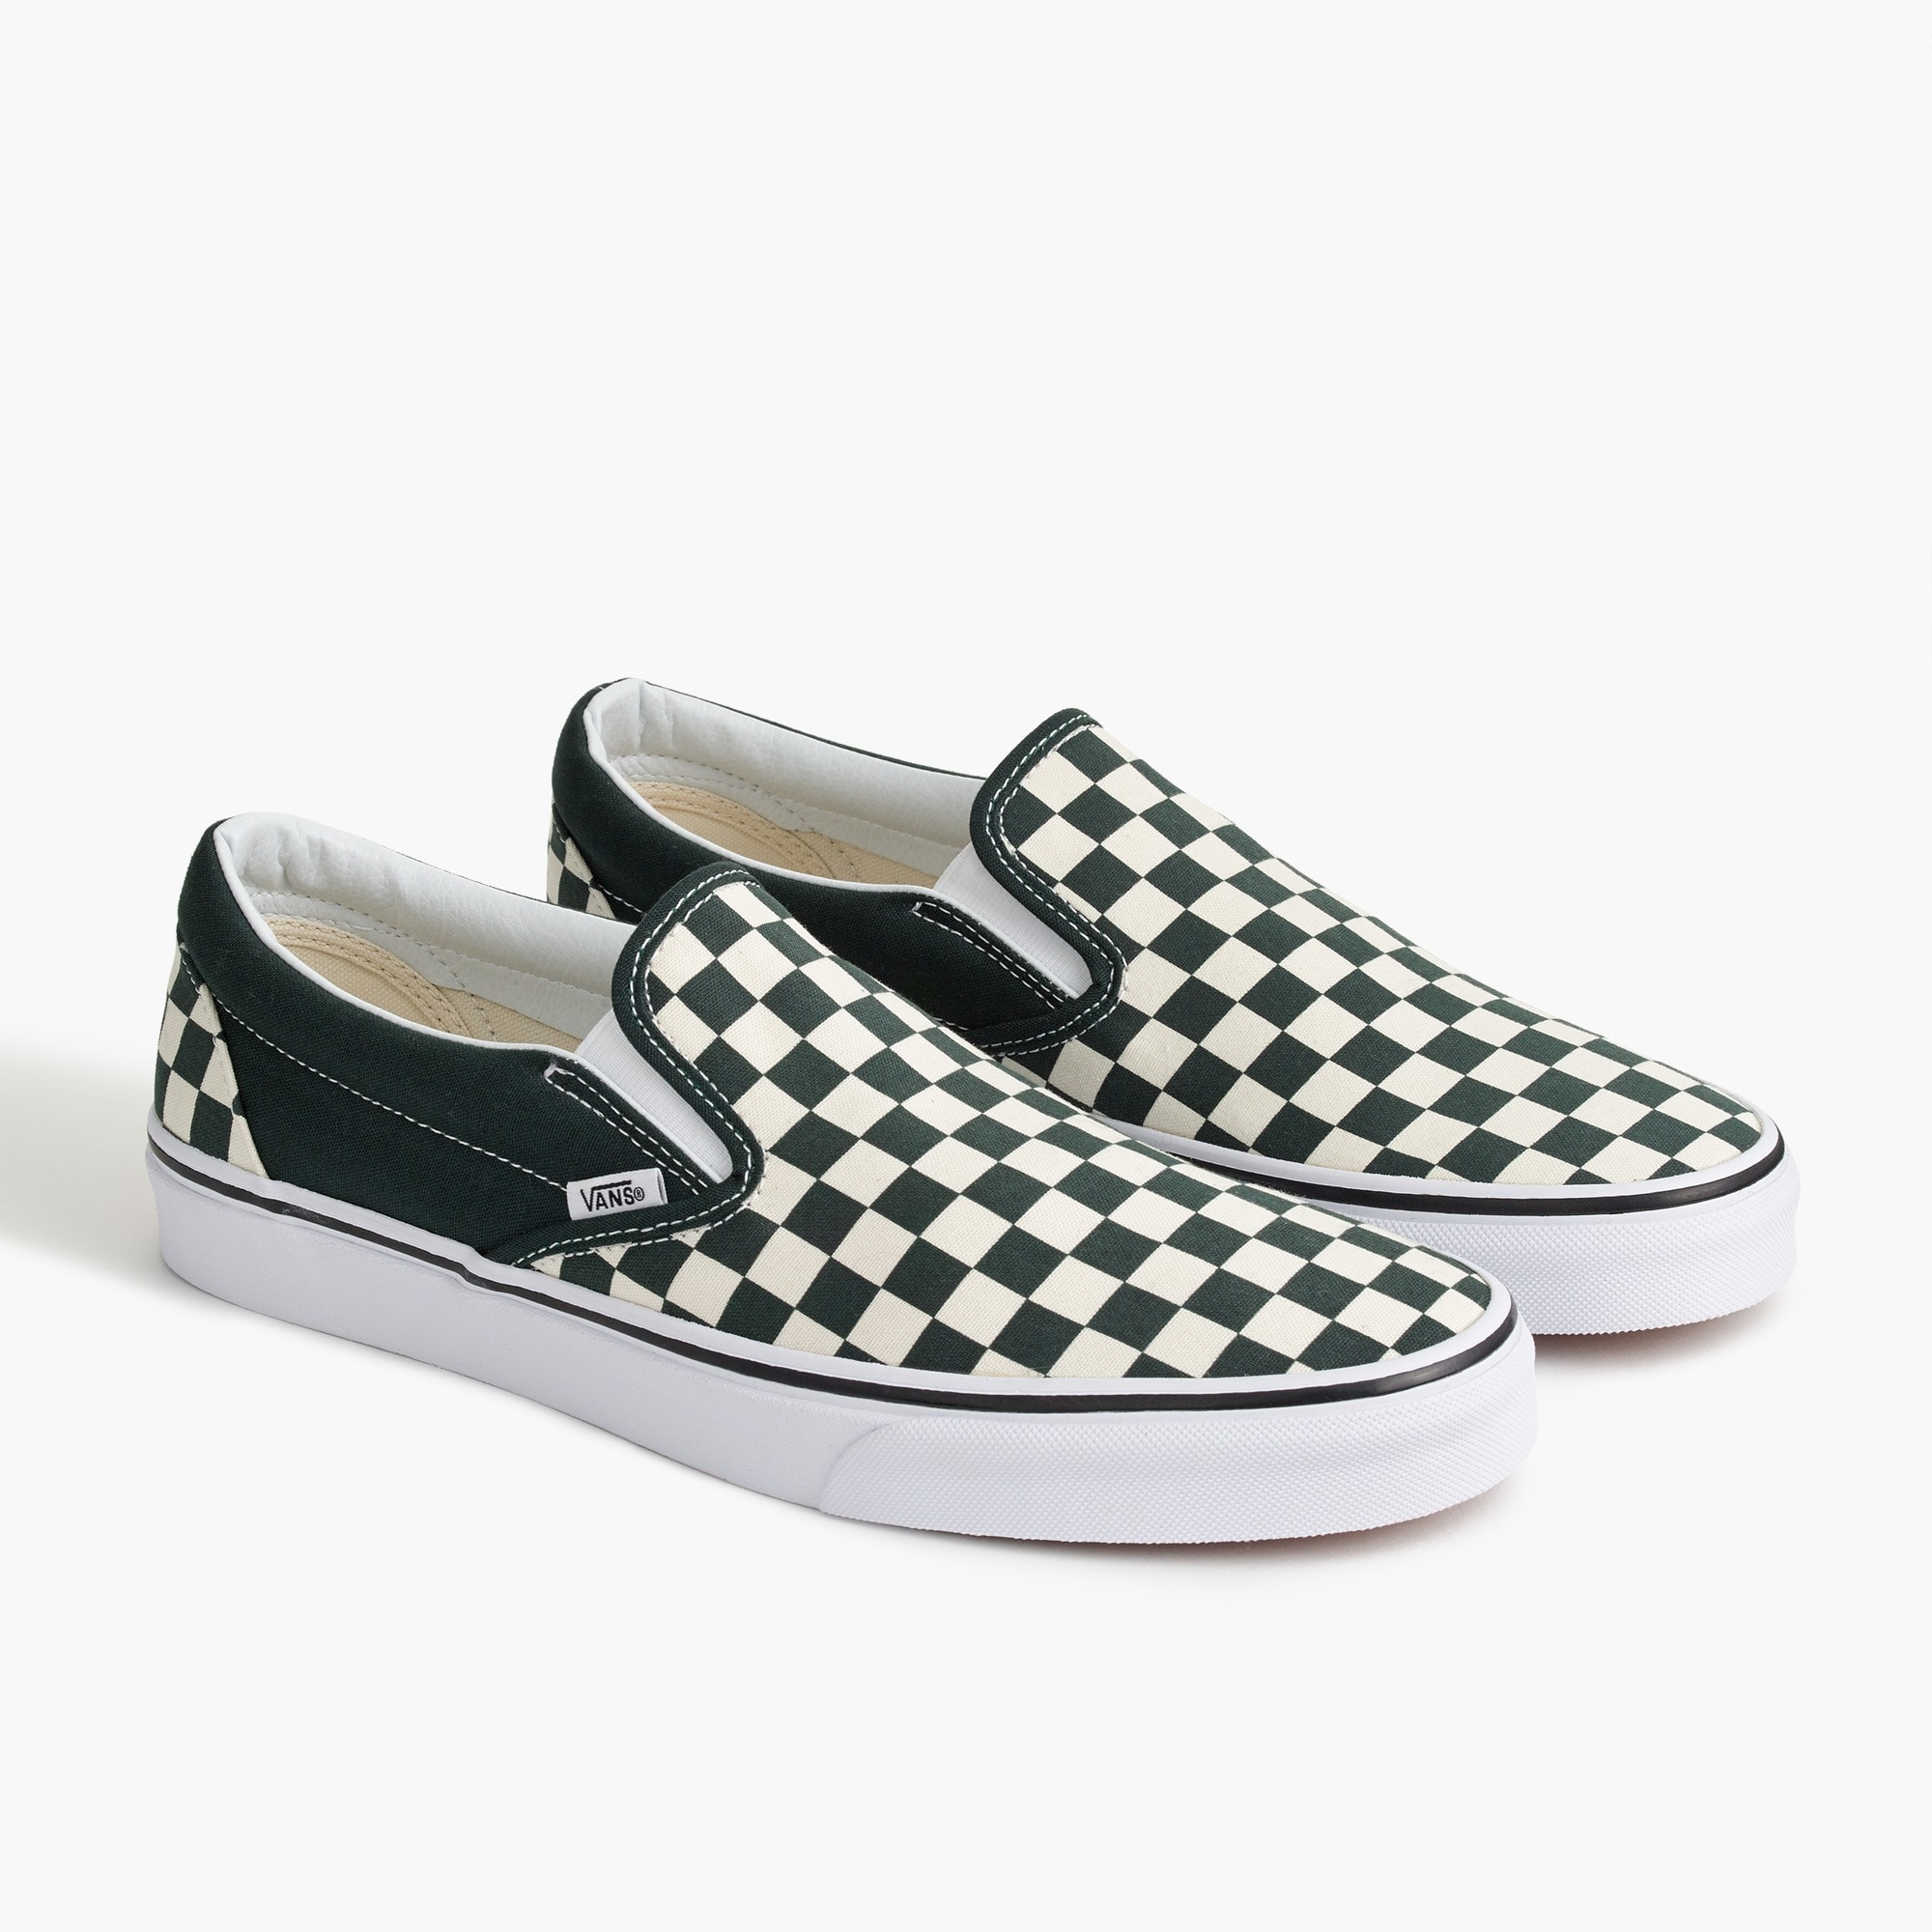 mens Vans®slip-on sneakers in checkerboard